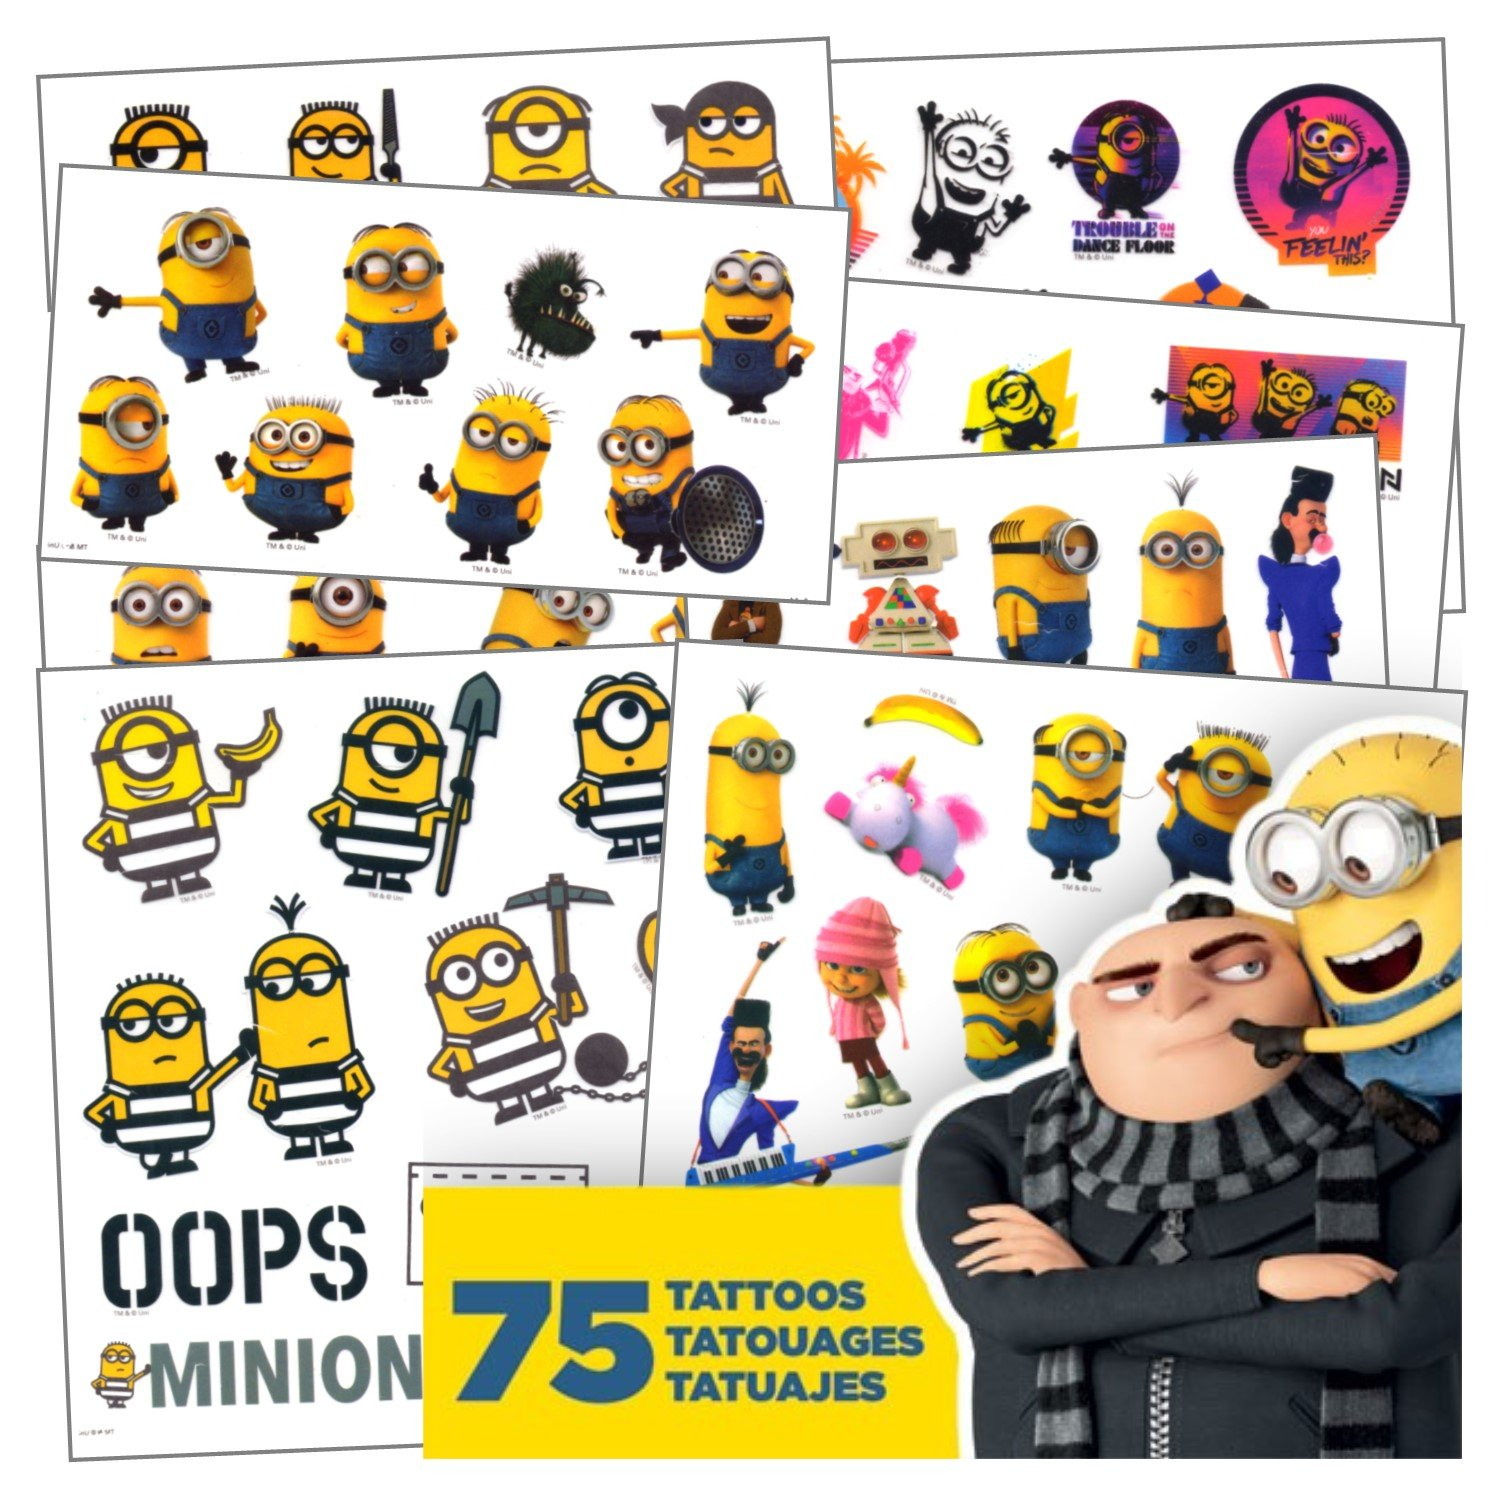 Childrens party supplies Despicable Me Tattoos - 75 Assorted Minions & Favorite Despicable Me 3 Characters Temporary Tattoos